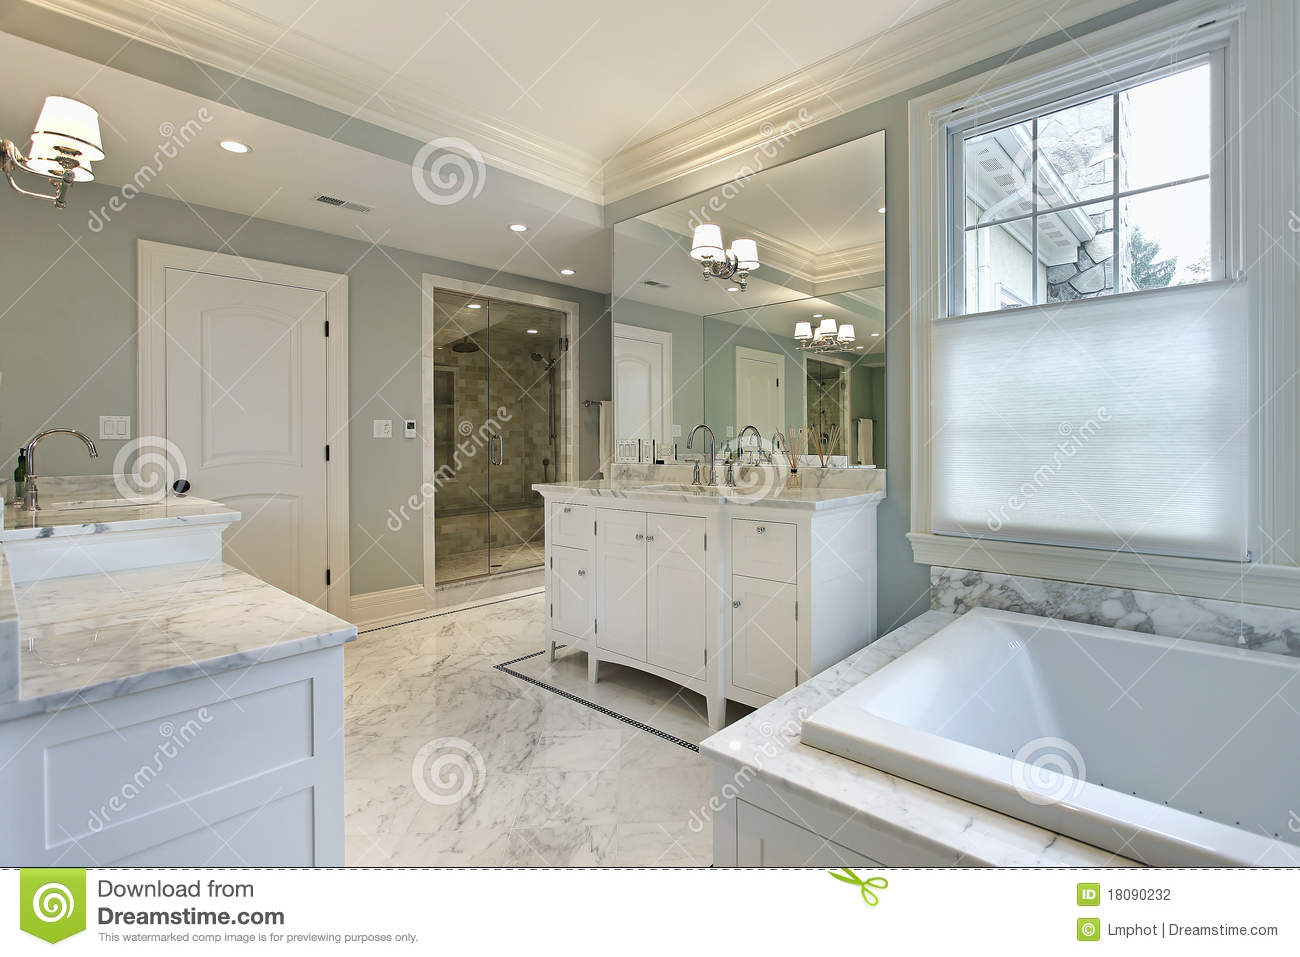 Gaudium bathroom at simcredible designs 4 image 2006 670x397 sims 4 - Large Master Bath In Luxury White Luxury Master Bathrooms